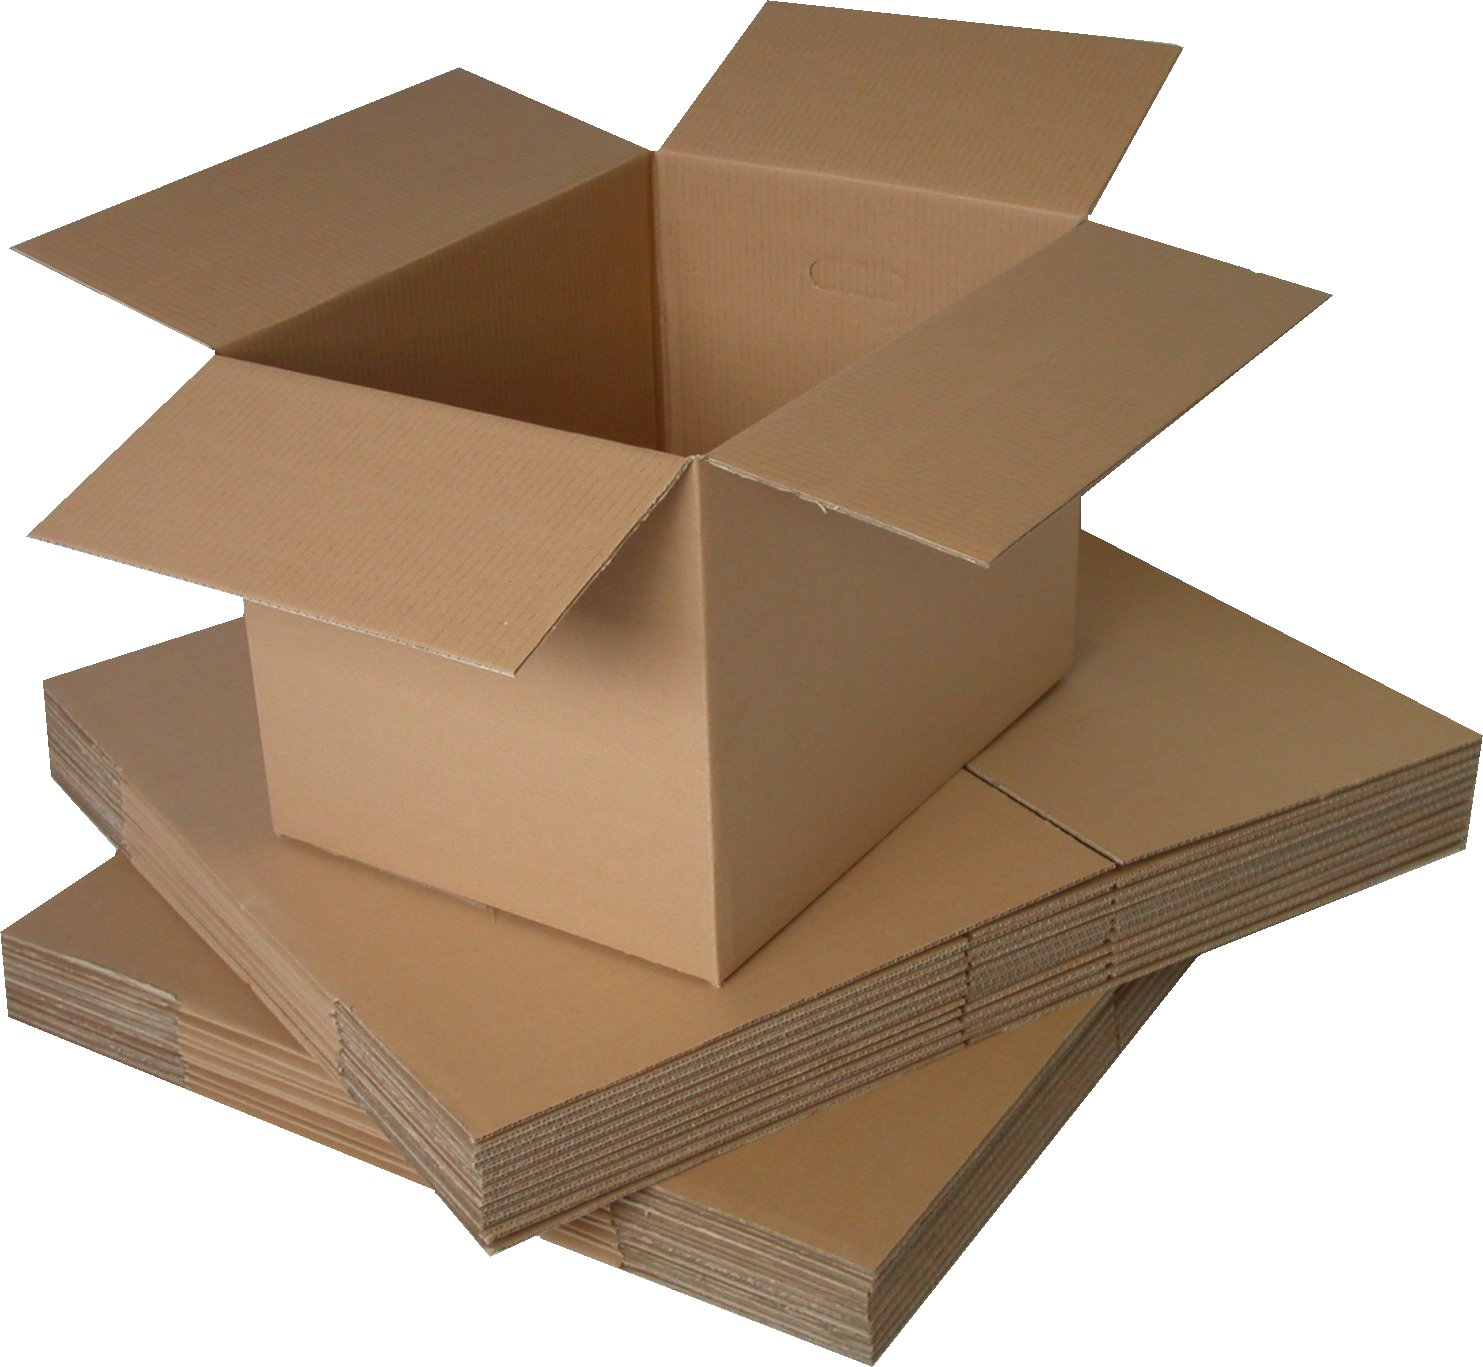 Cardboard boxes have many uses: shipping, forts, mattes, windshield visor, and much more!